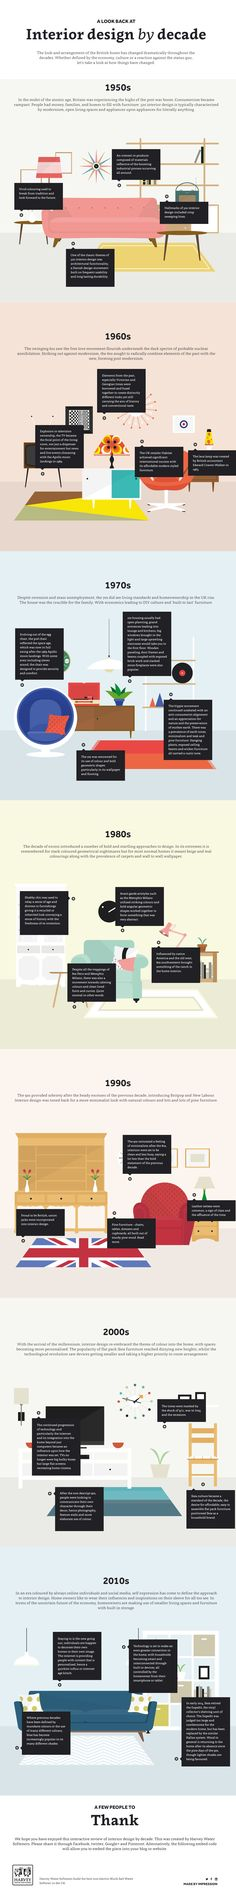 A Look Back at Interior Design by Decade    #infographic #InteriorDesign #Home #History